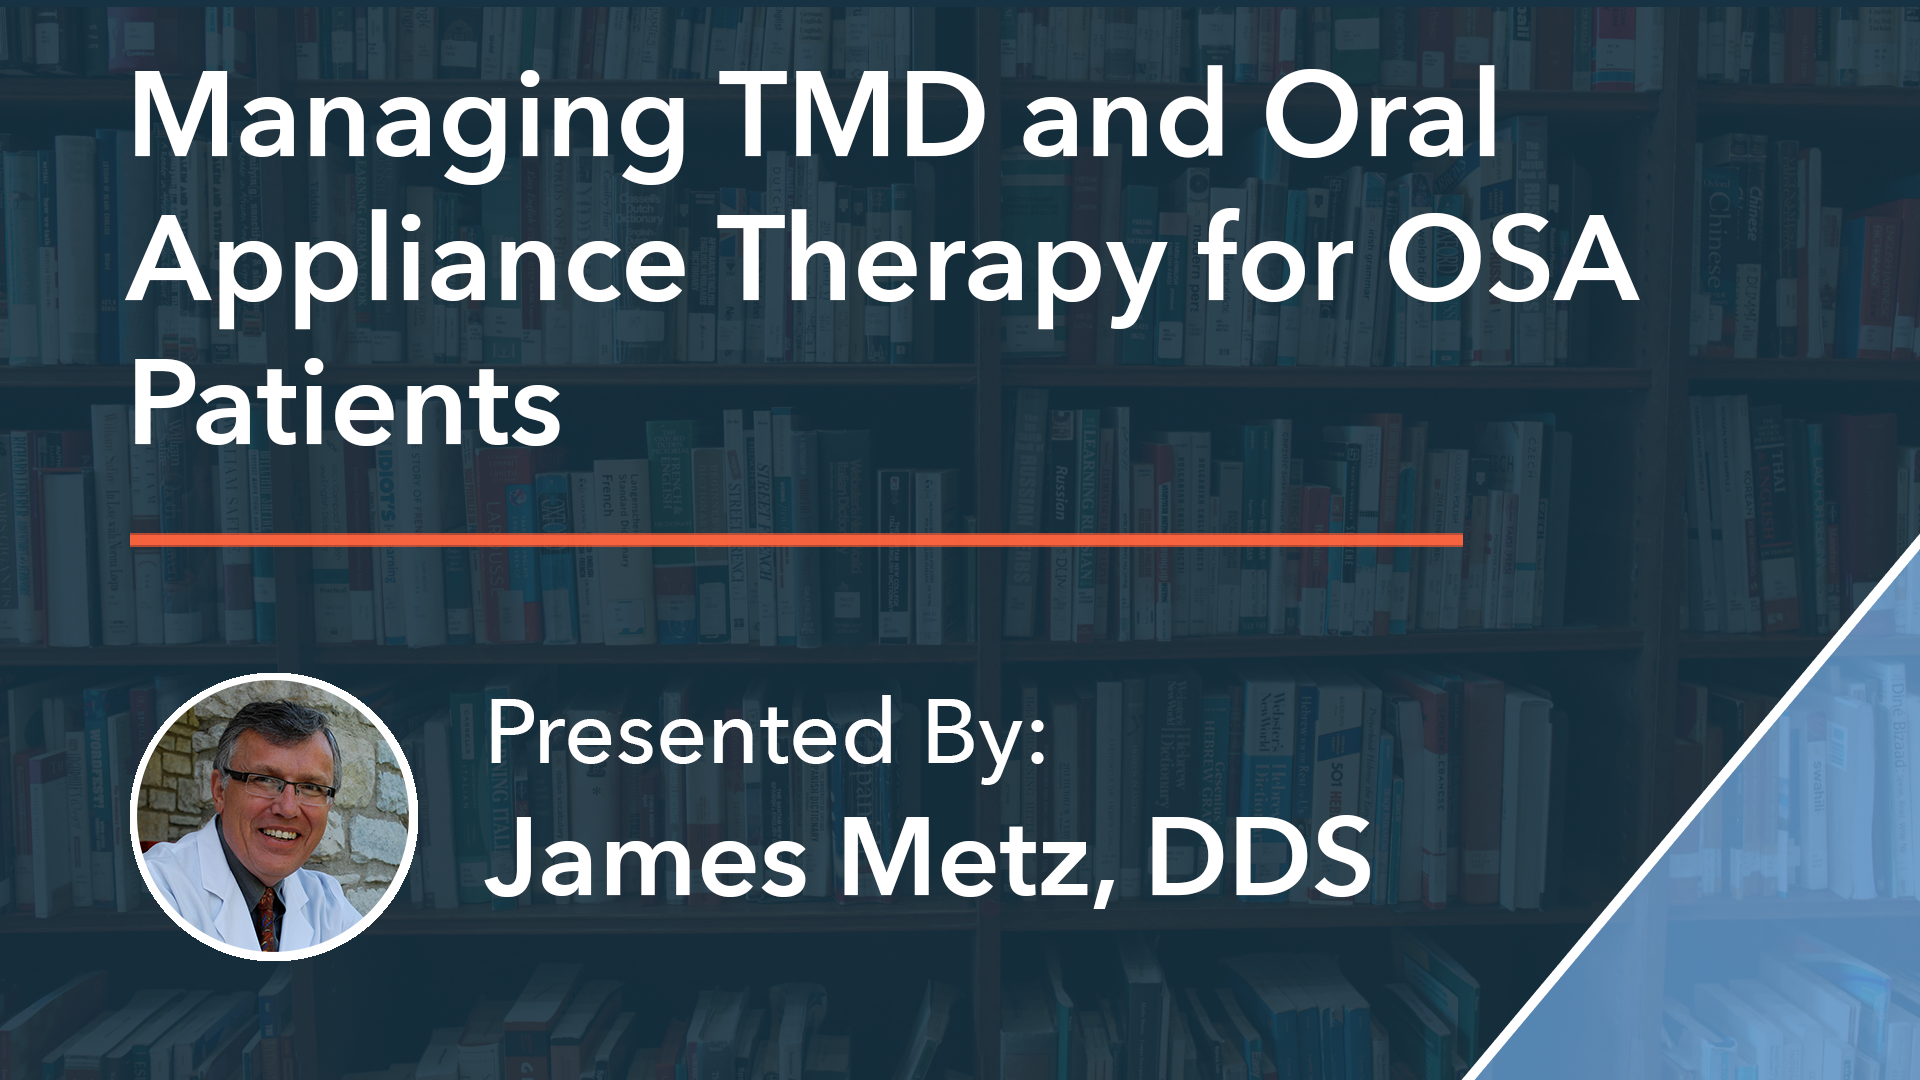 Managing TMD and Oral Appliance Therapy for OSA Patients Dr James Metz